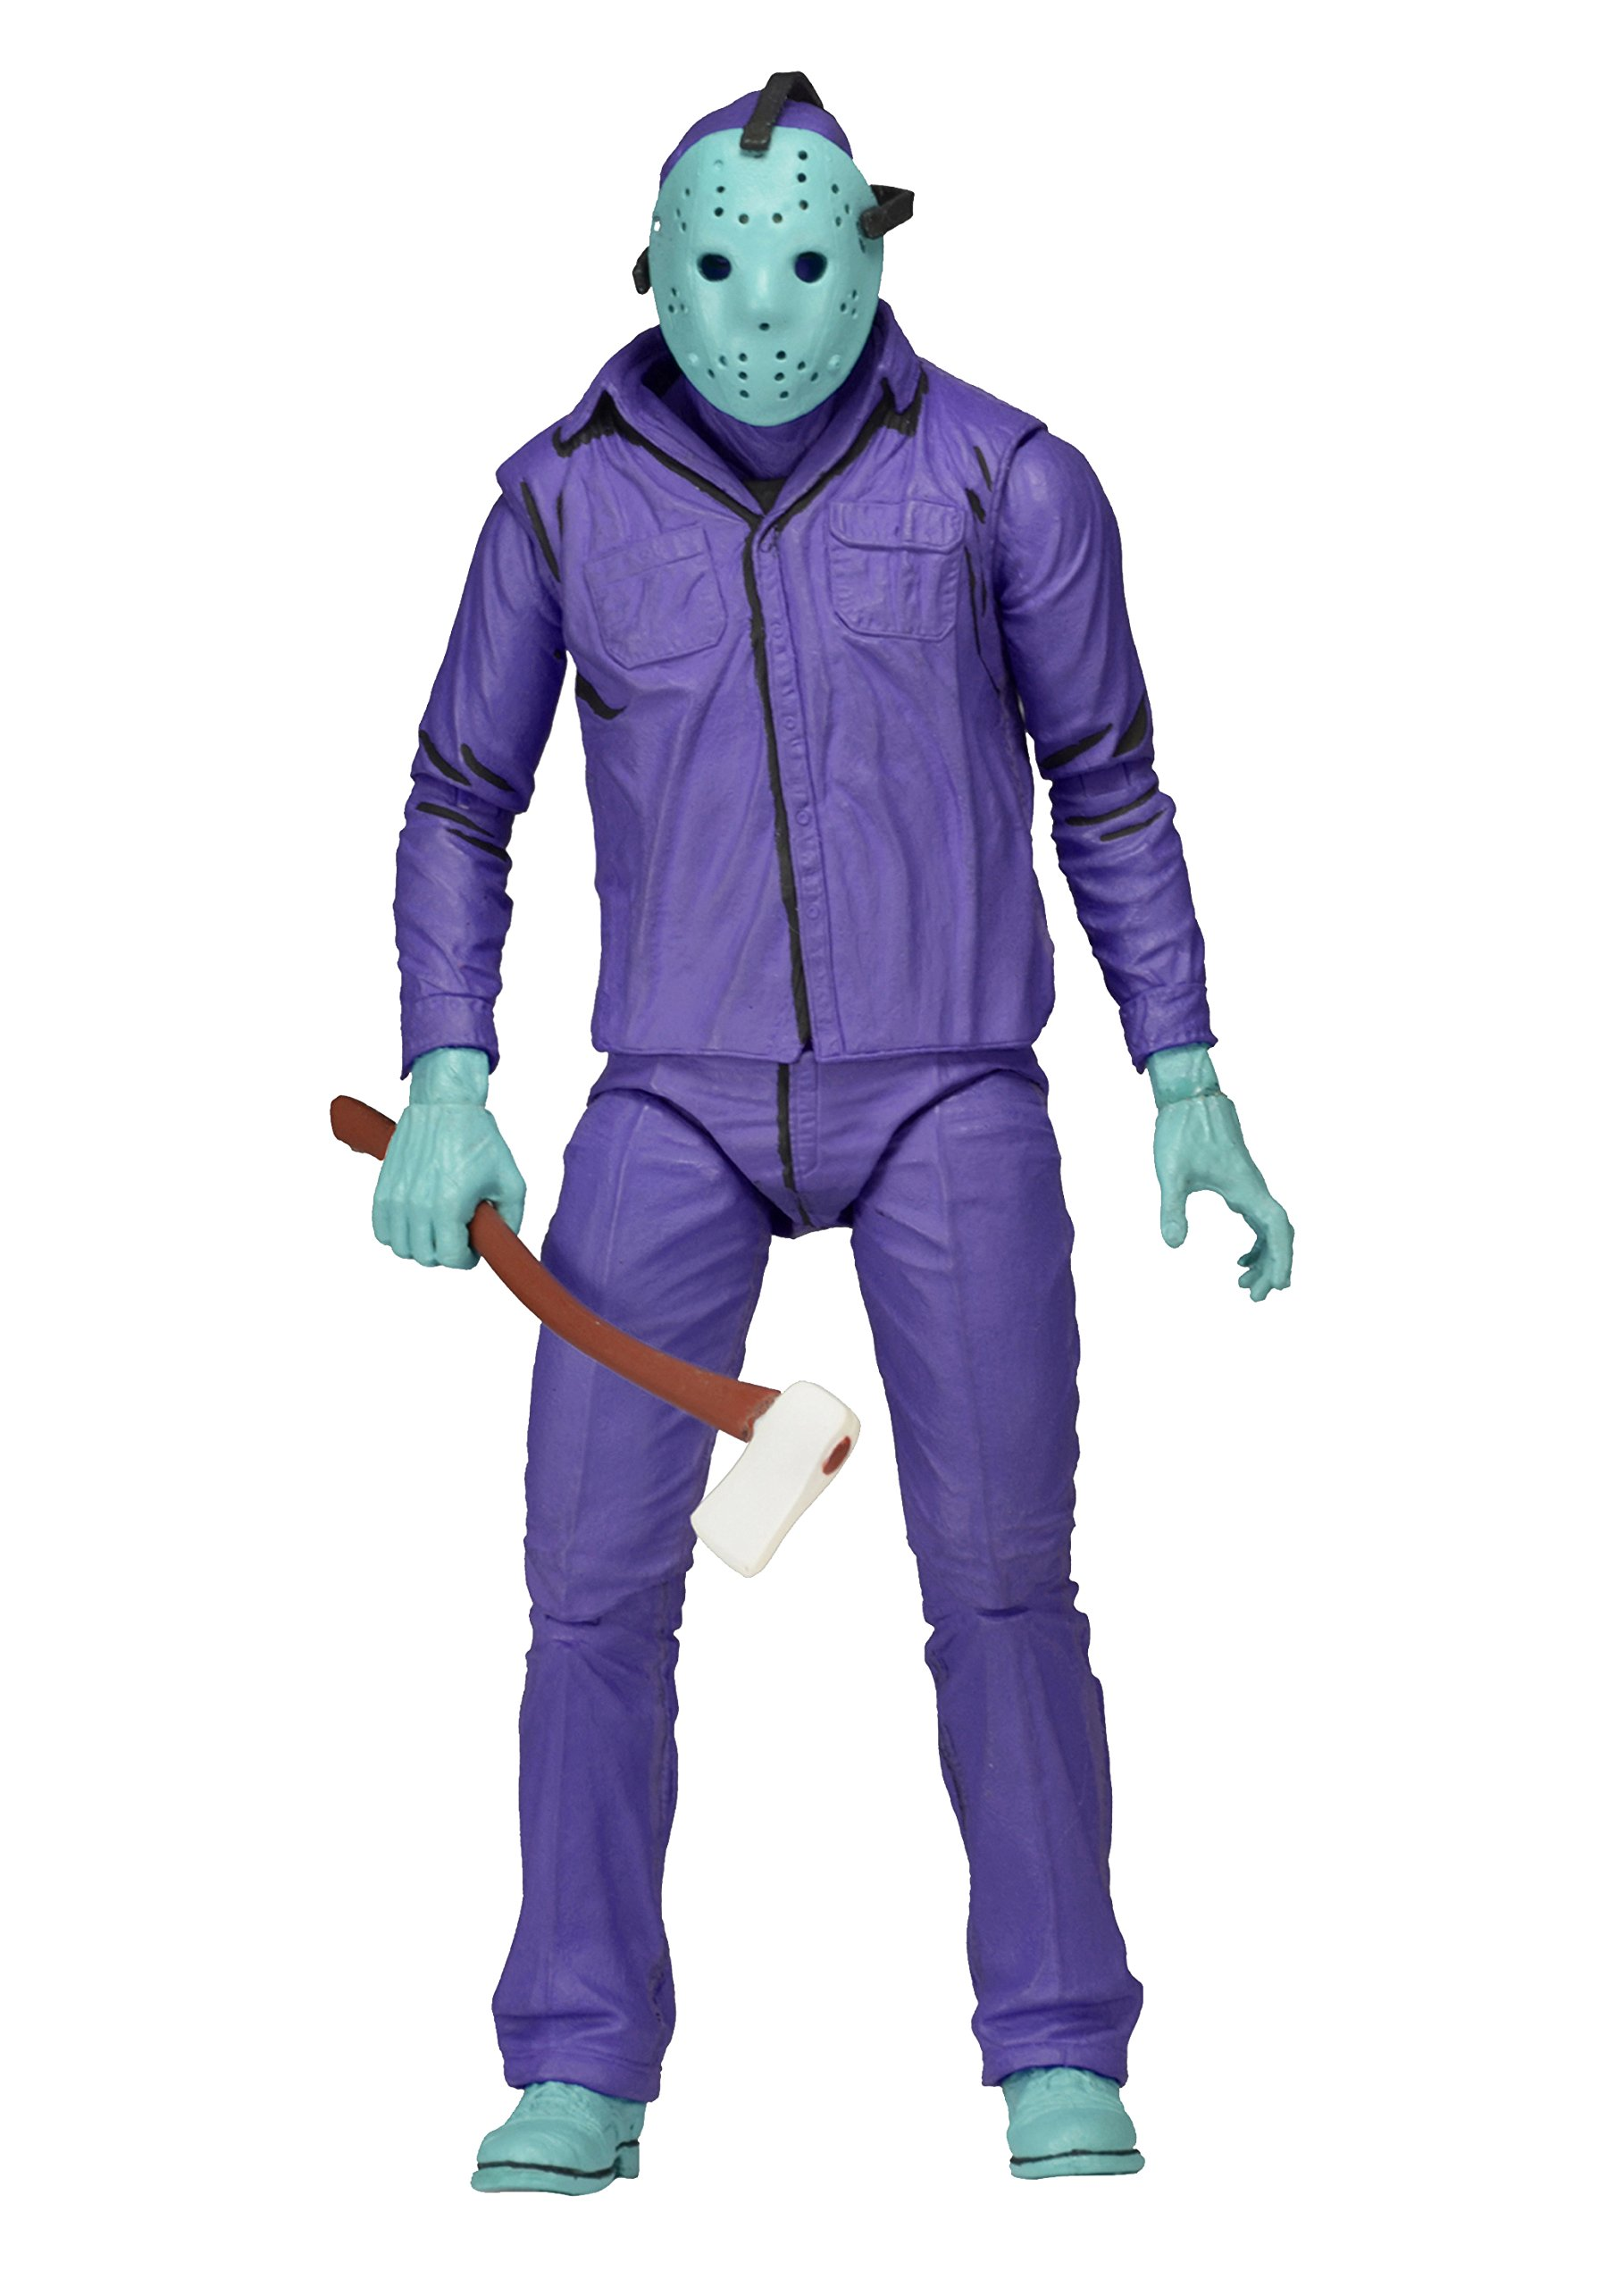 NECA Friday the 13th: 7'' Scale Action Figure: Classic Video Game Appearance Jason